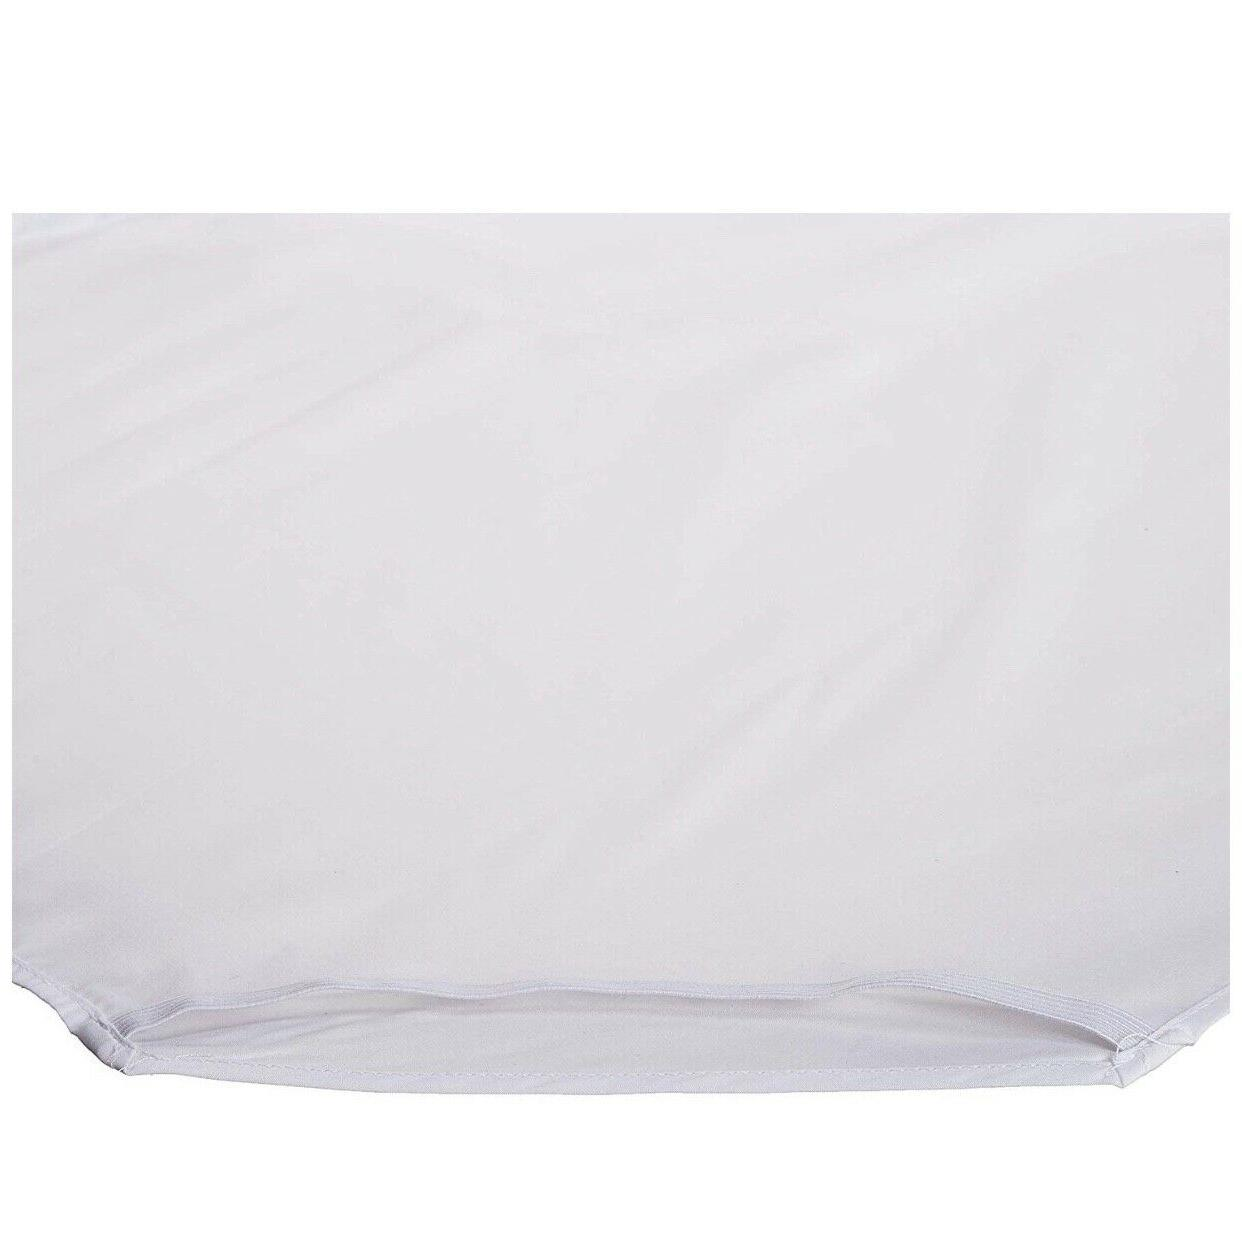 Size Cot Sheet 23x40 Style#7661WT